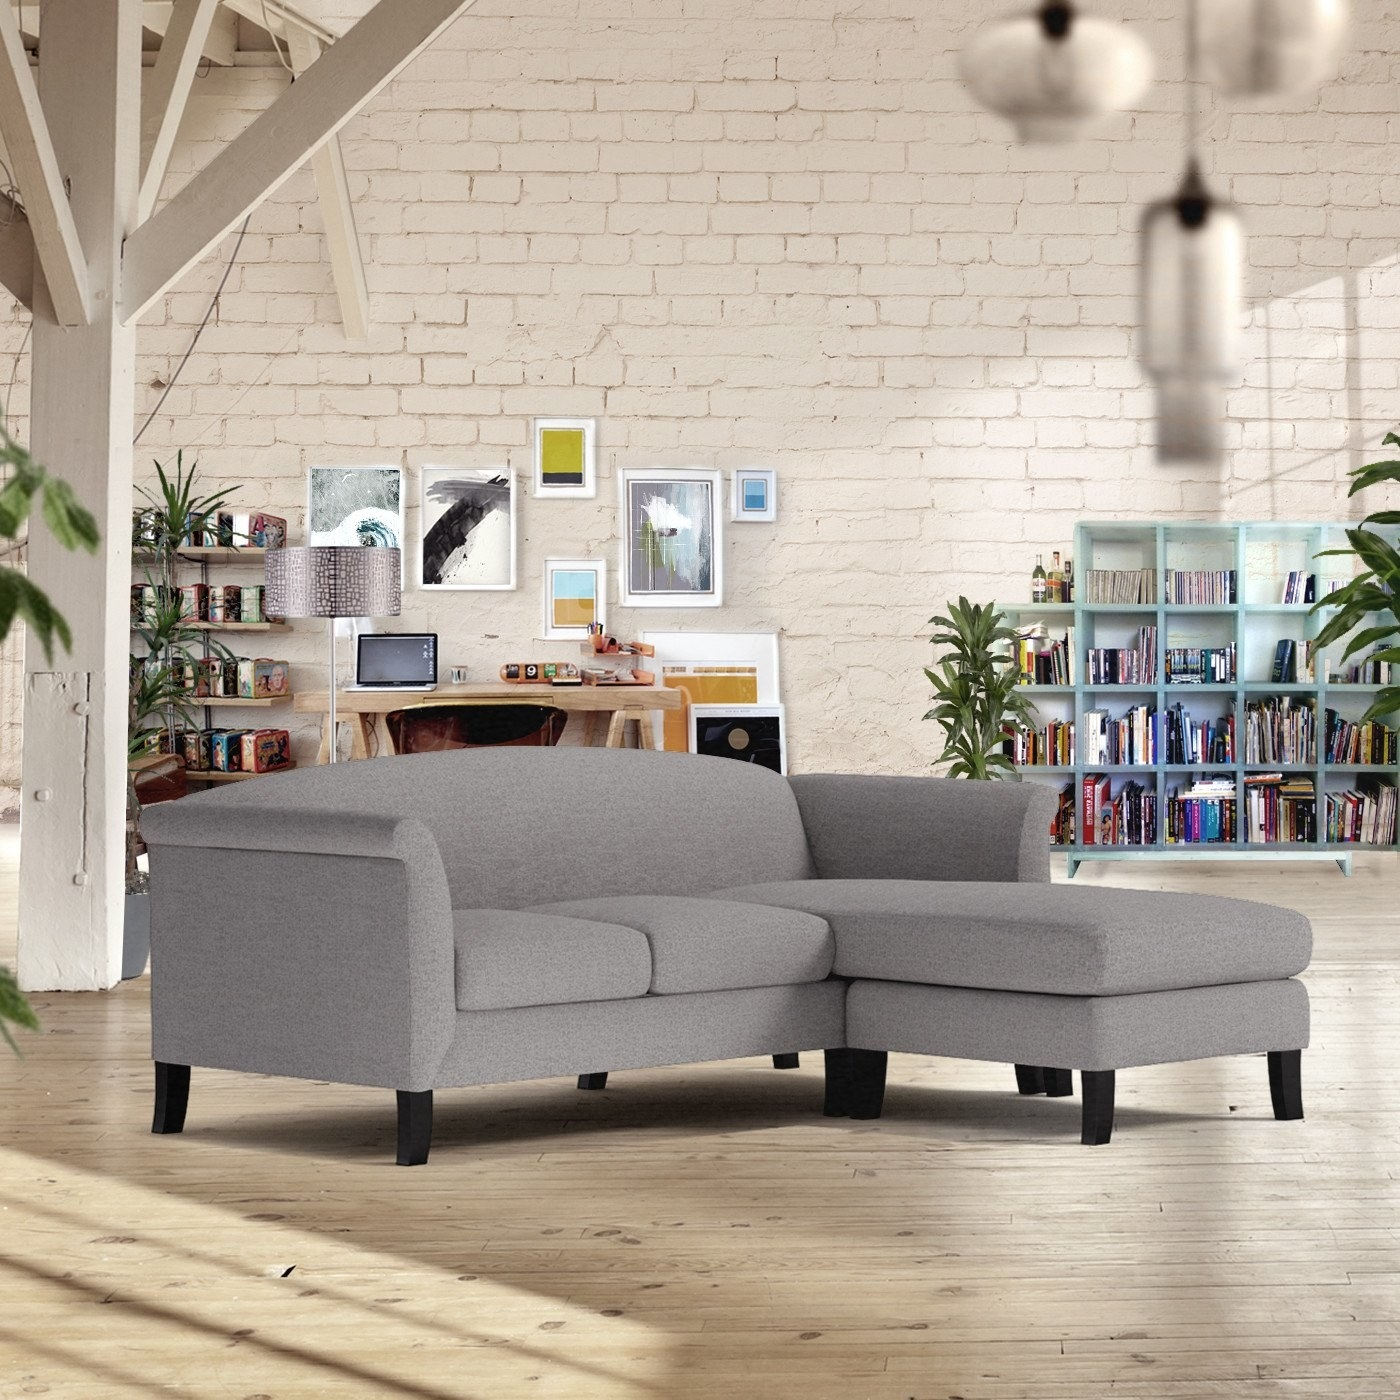 Charmant Styles: Find Customizable Reversible Chaise Sofas, Apartment Size Sofas,  Sectionals, Sleeper